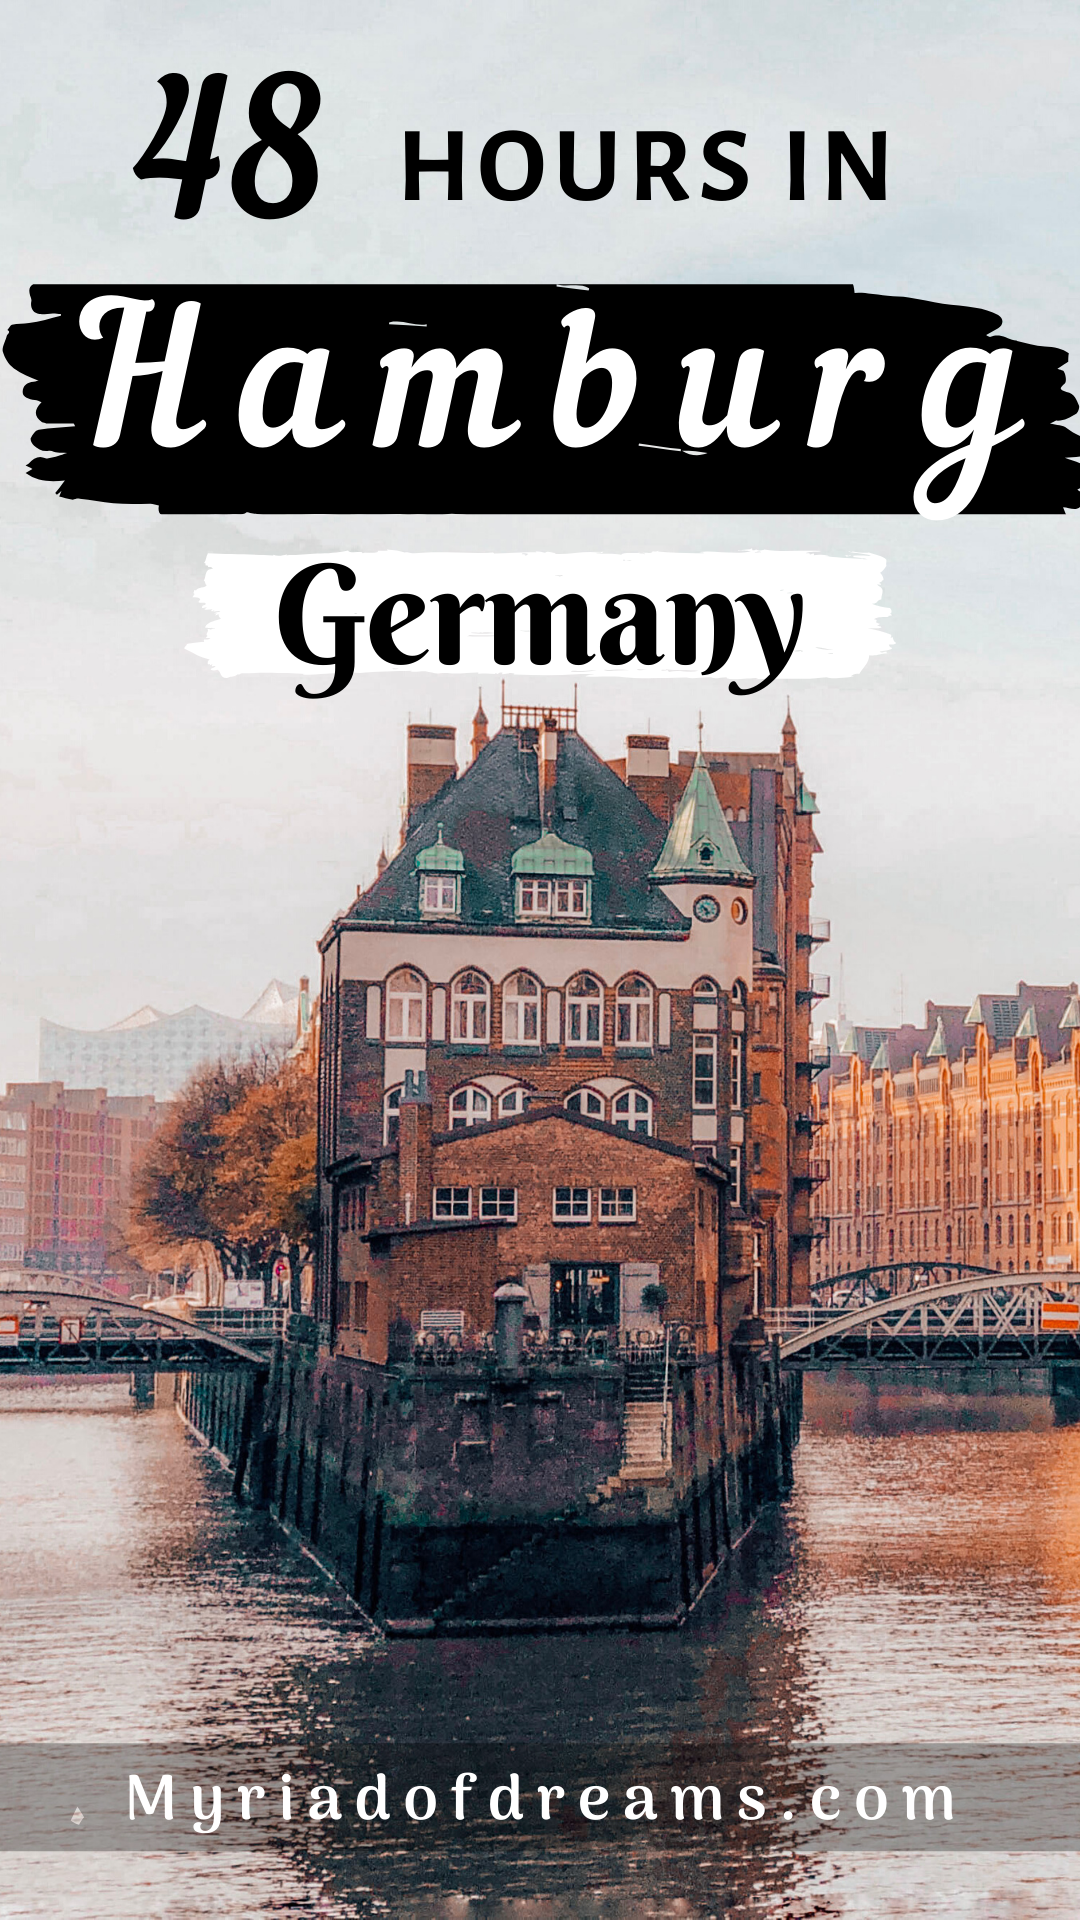 Plan the ultimate city break to Hamburg with this 2 days Hamburg Germany itinerary. Find tips for things to do in Hamburg including a visit to the port, Reeperbahn and St. Pauli. Visit the famous landmarks of the city and learn about the history of Hamburg. This post covers all the bucket list places that one should not miss during their Hamburg travel. #germany #germanytravel #europe #europetravel #hamburg